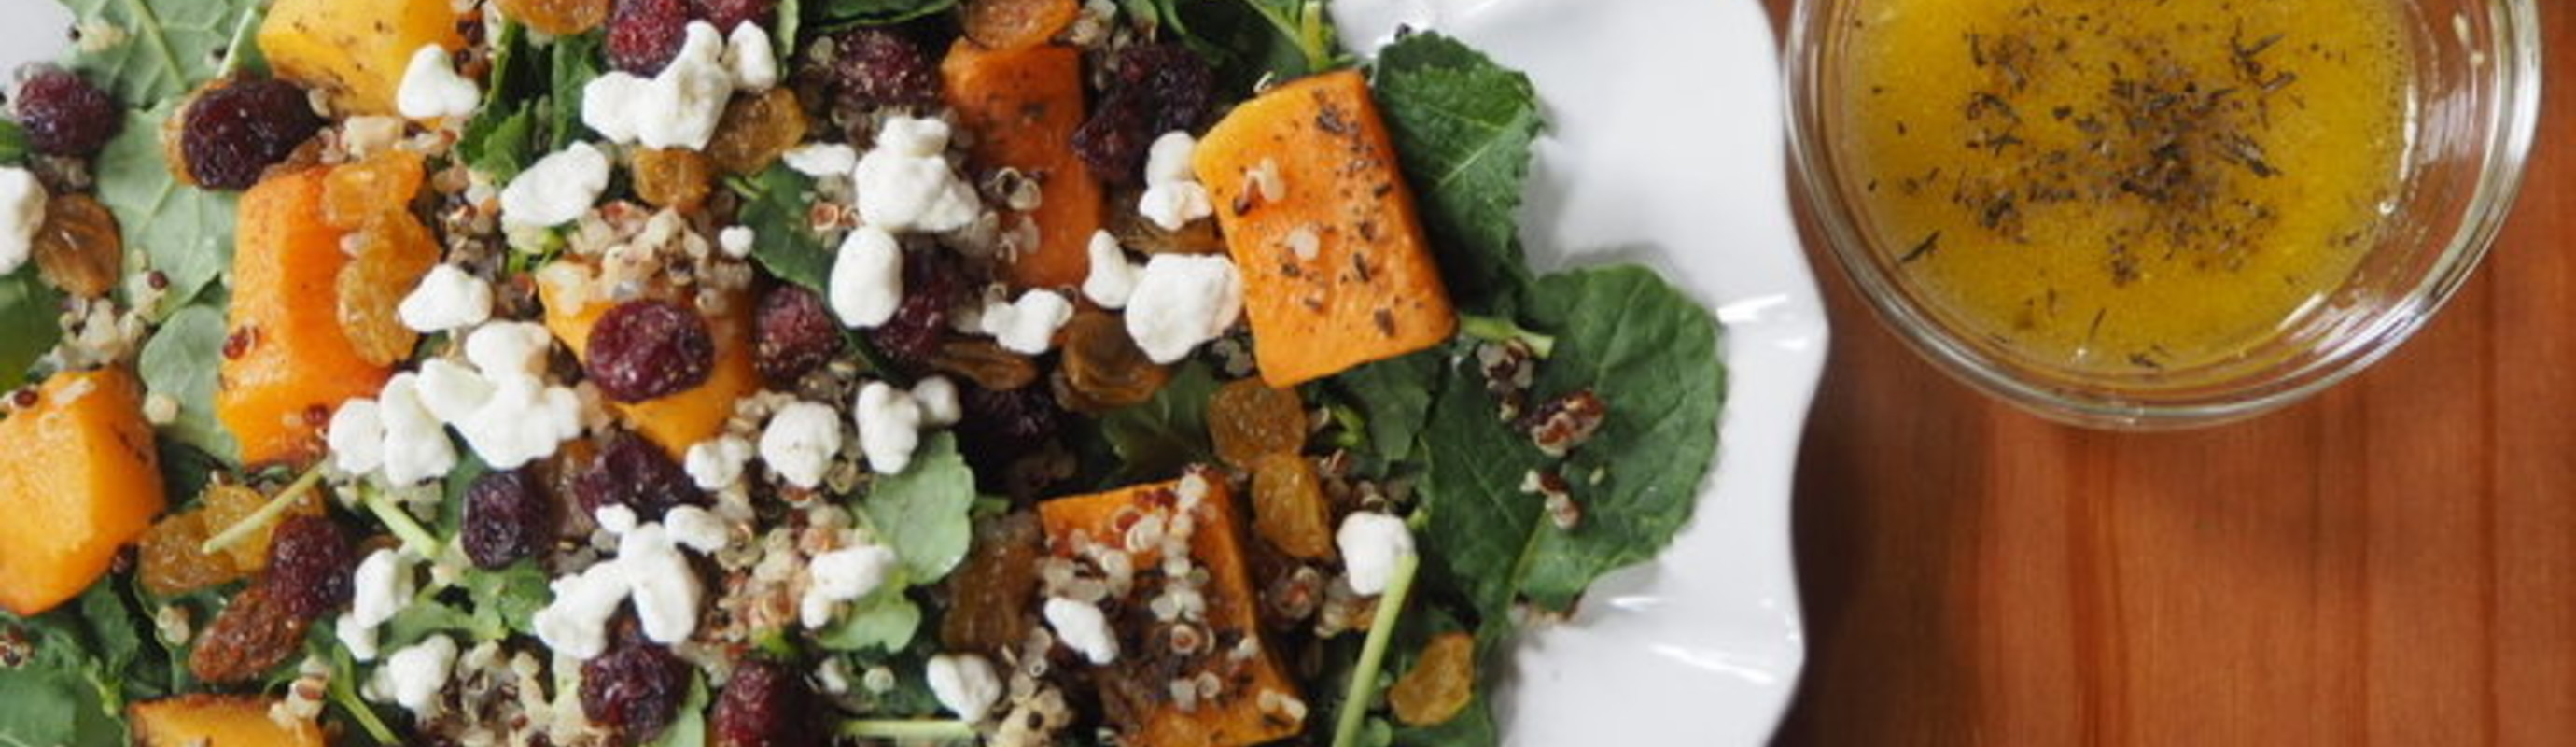 "Louis Sel's ""Say Hello to Fall"" Salad"